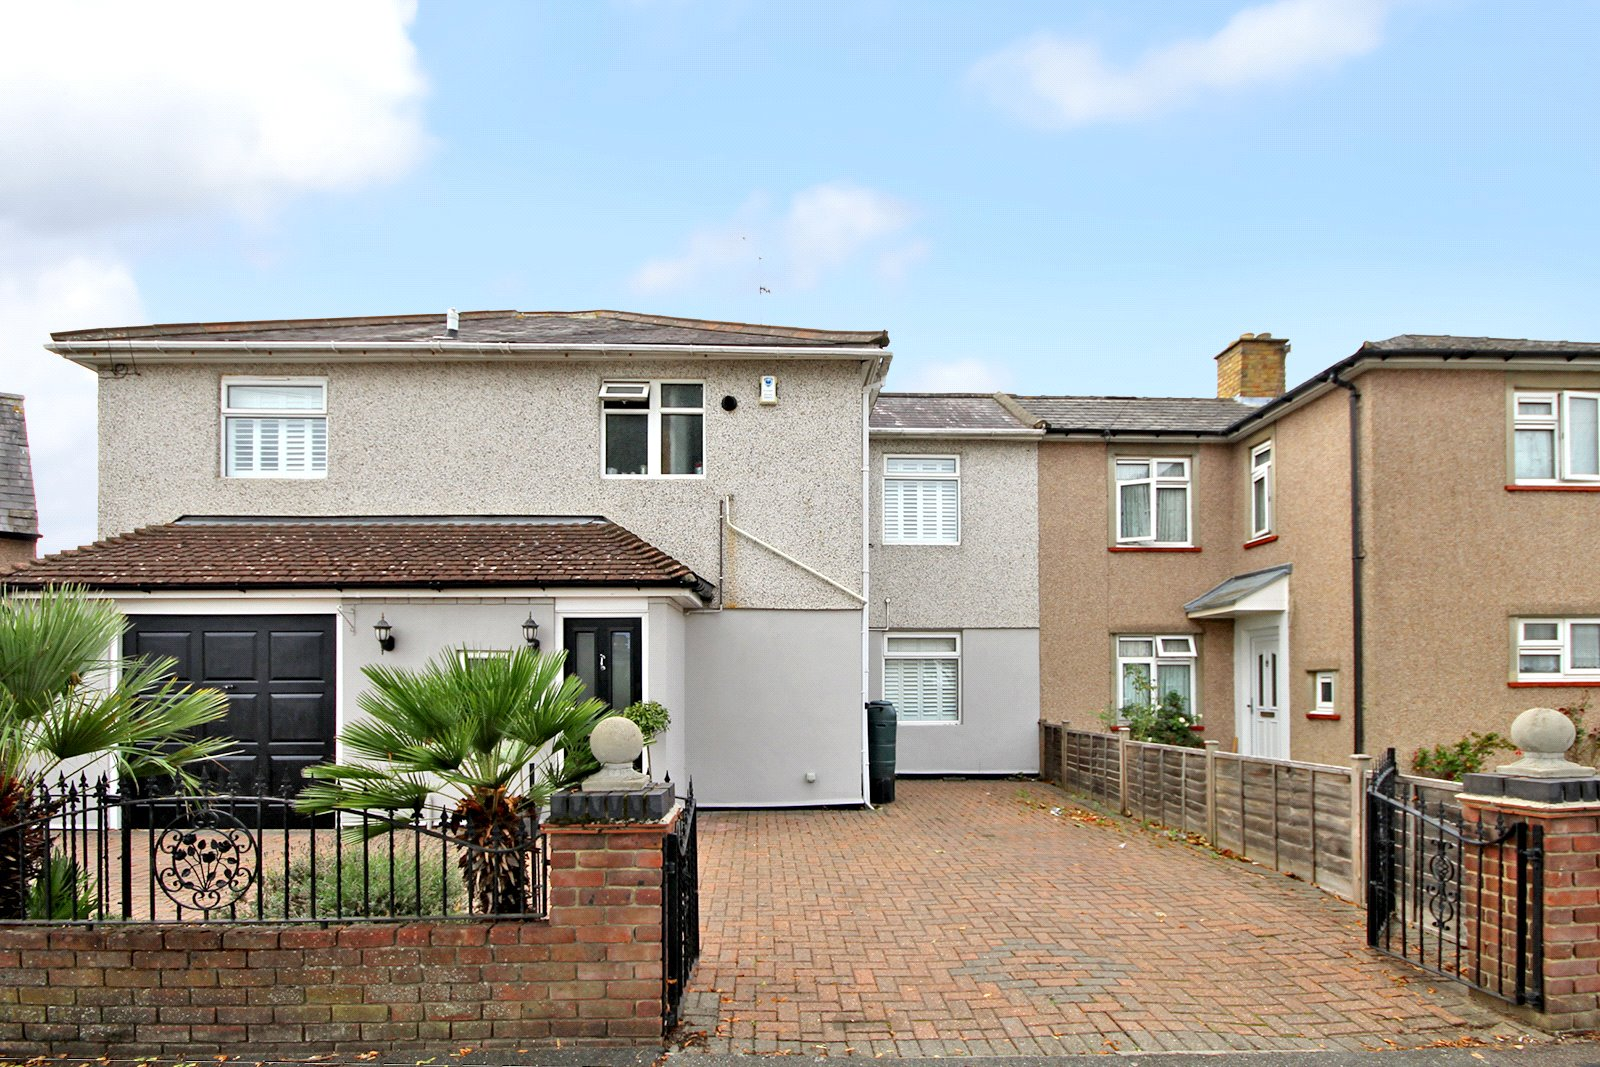 Burnell Avenue, Welling, Kent, DA16